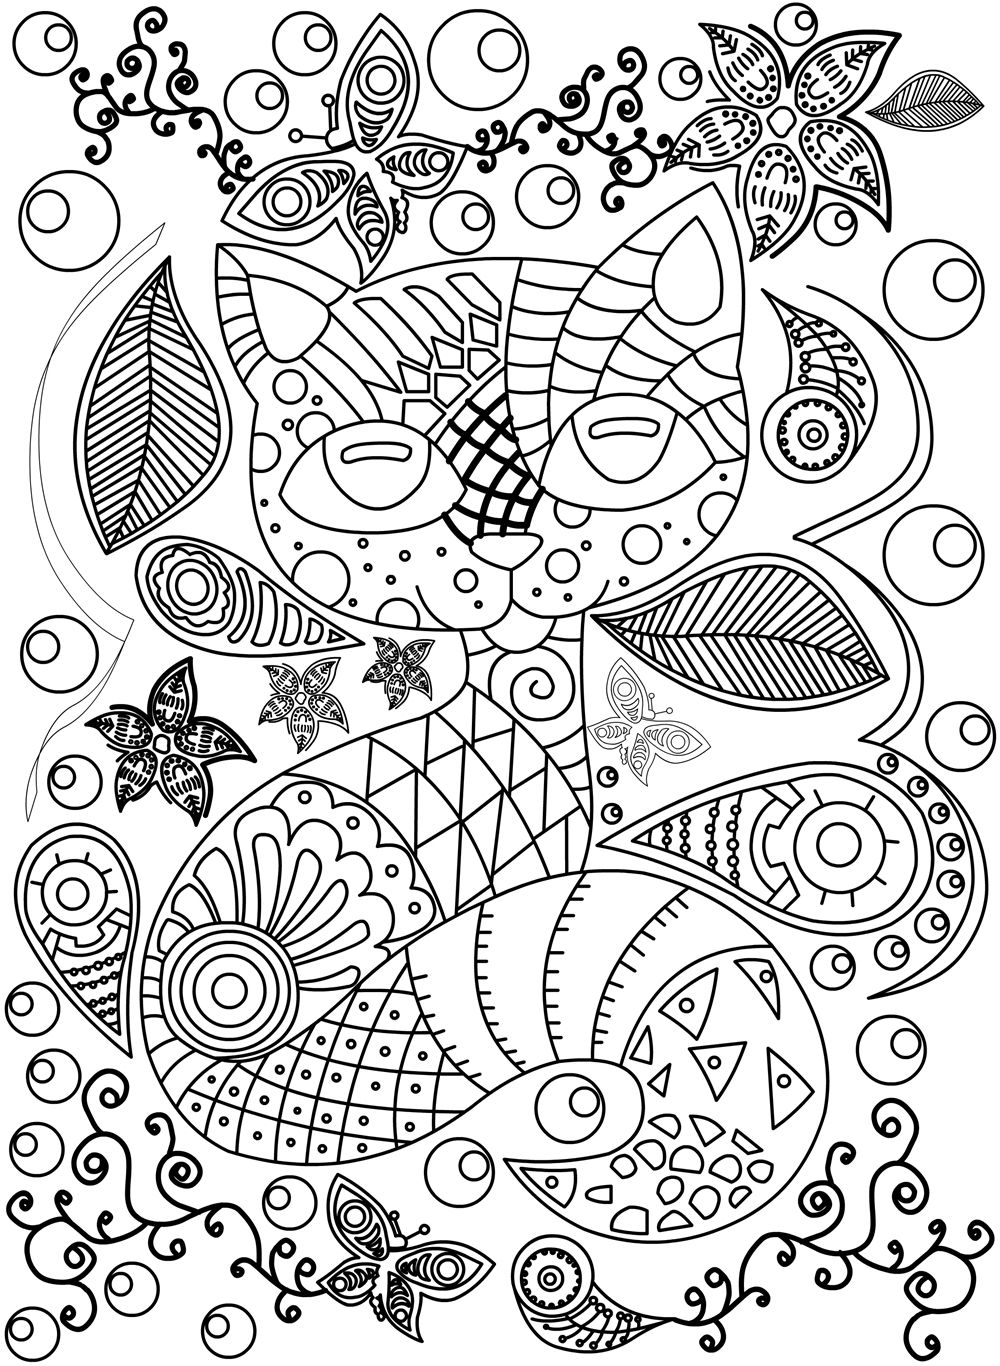 Adult Coloring Book Stress Relieving Cats No Pin Limits More